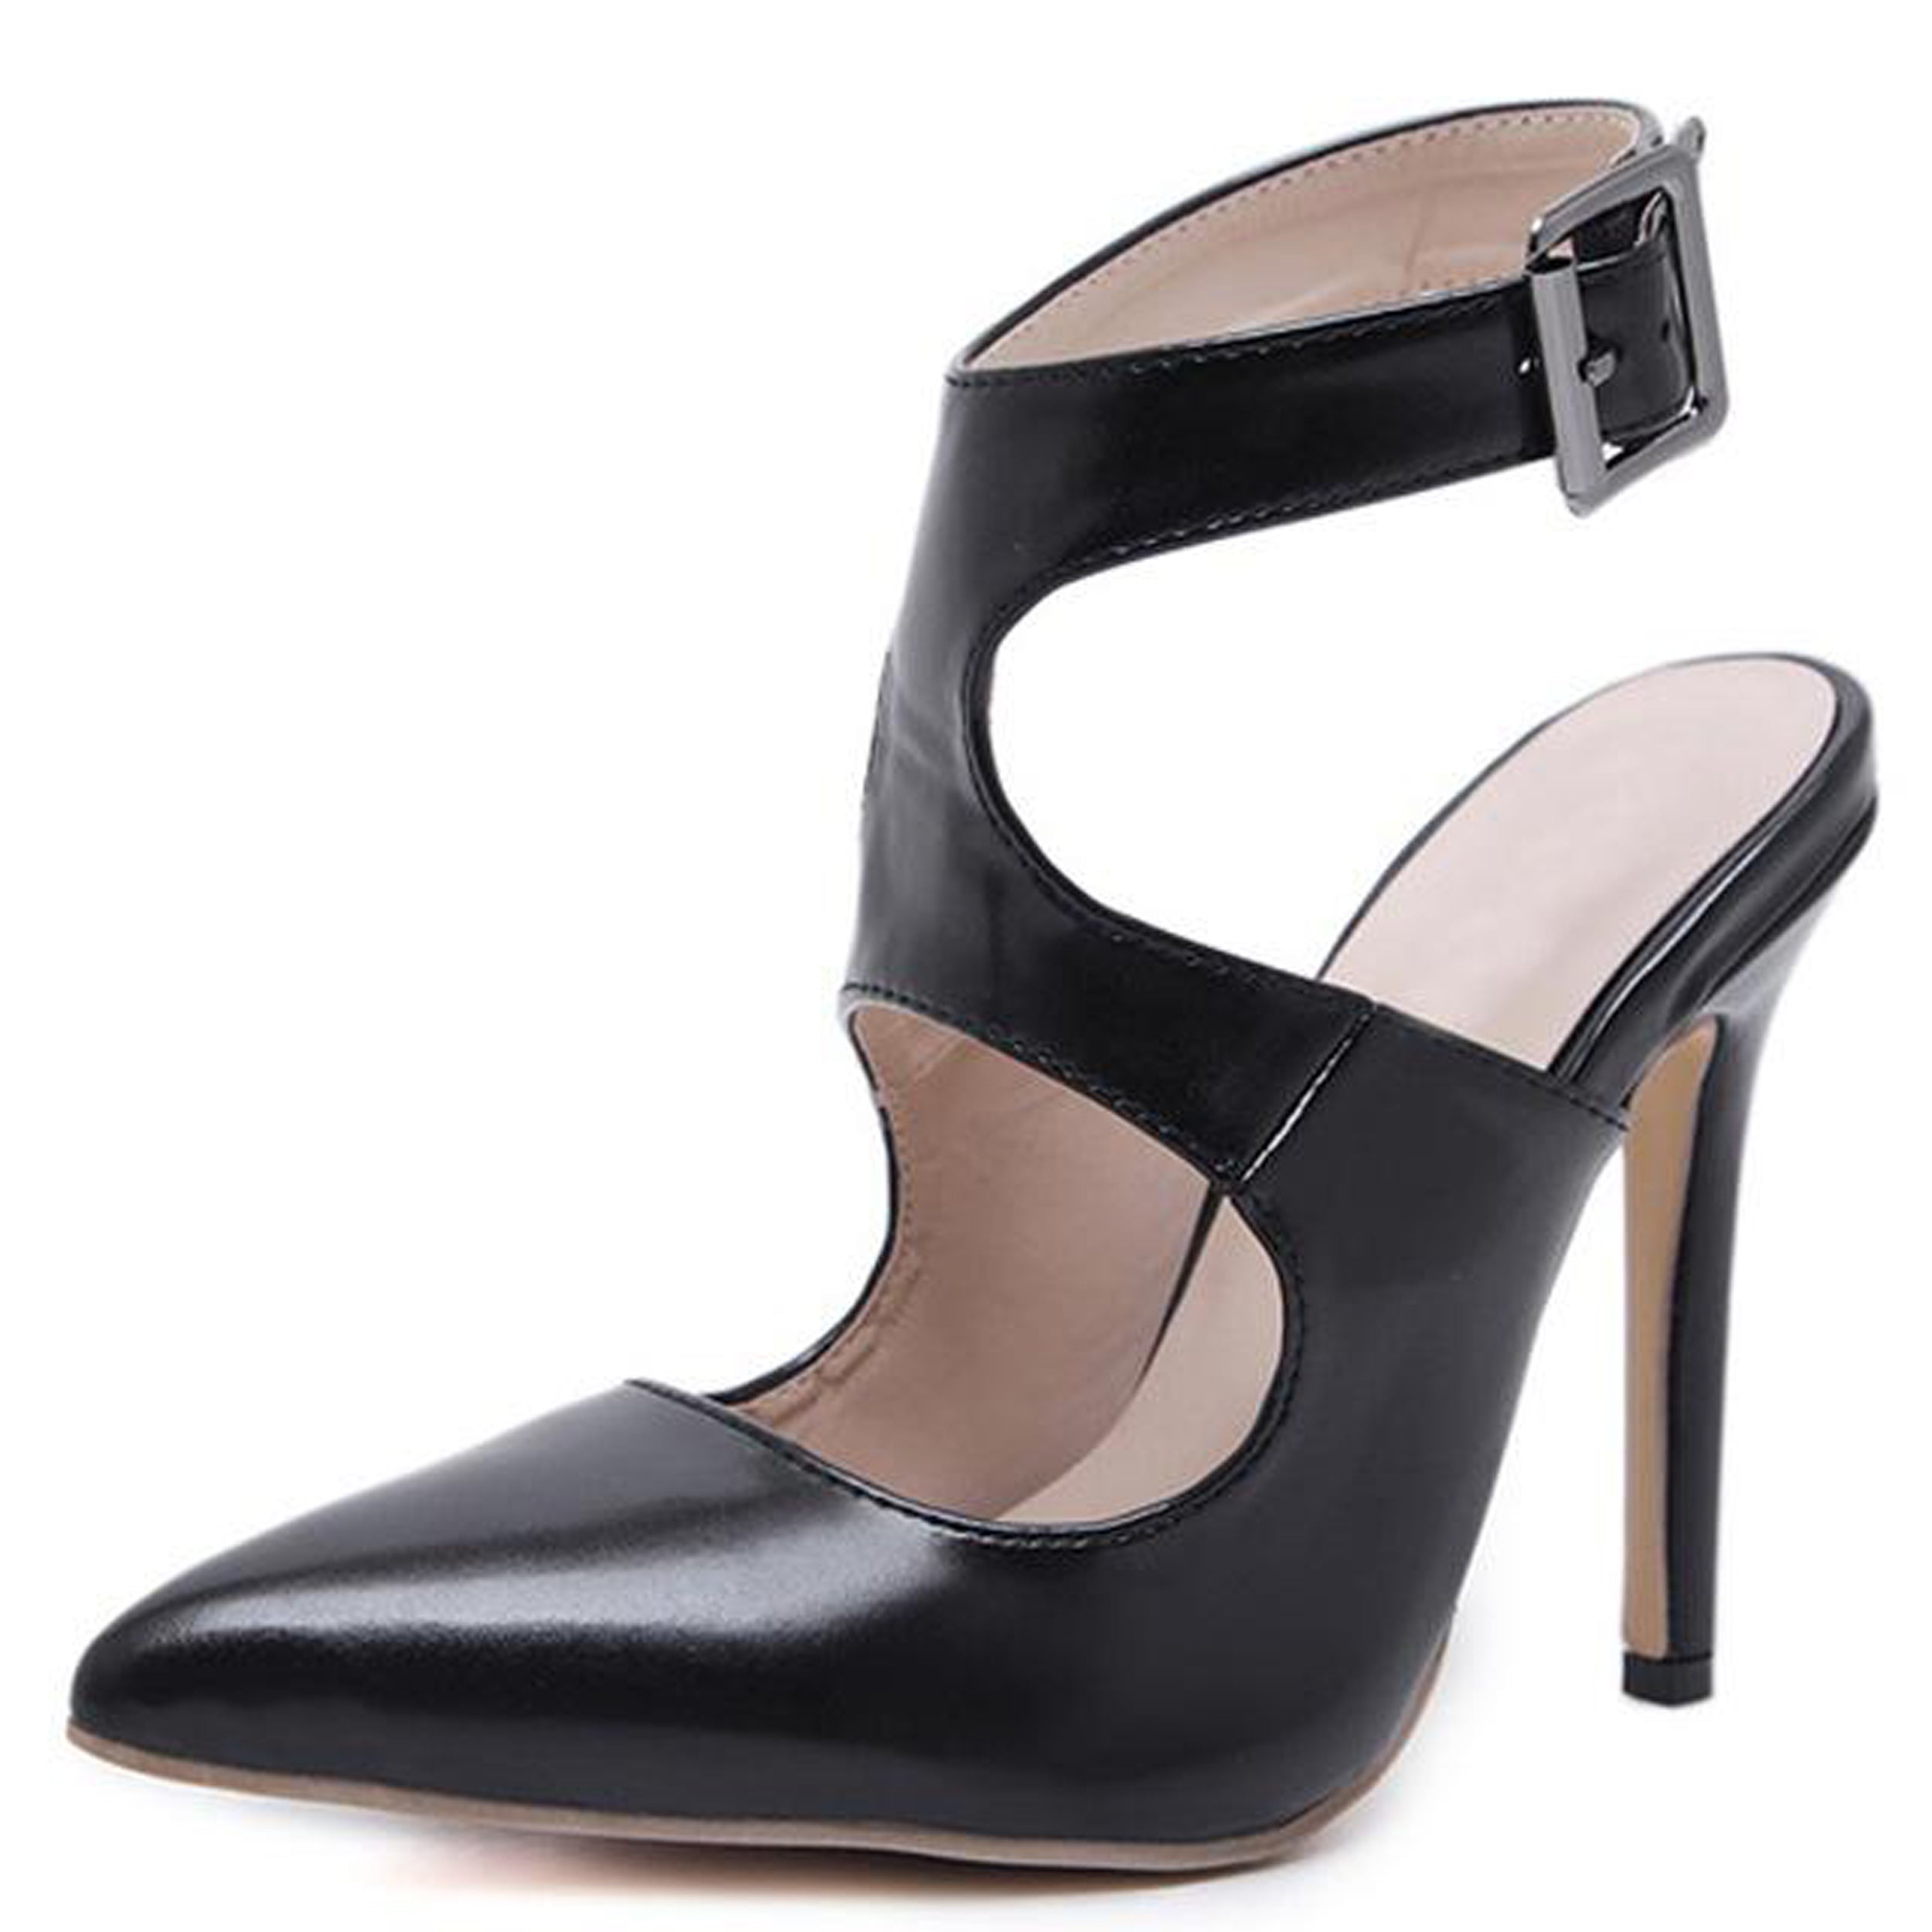 Black ankle strap pumps